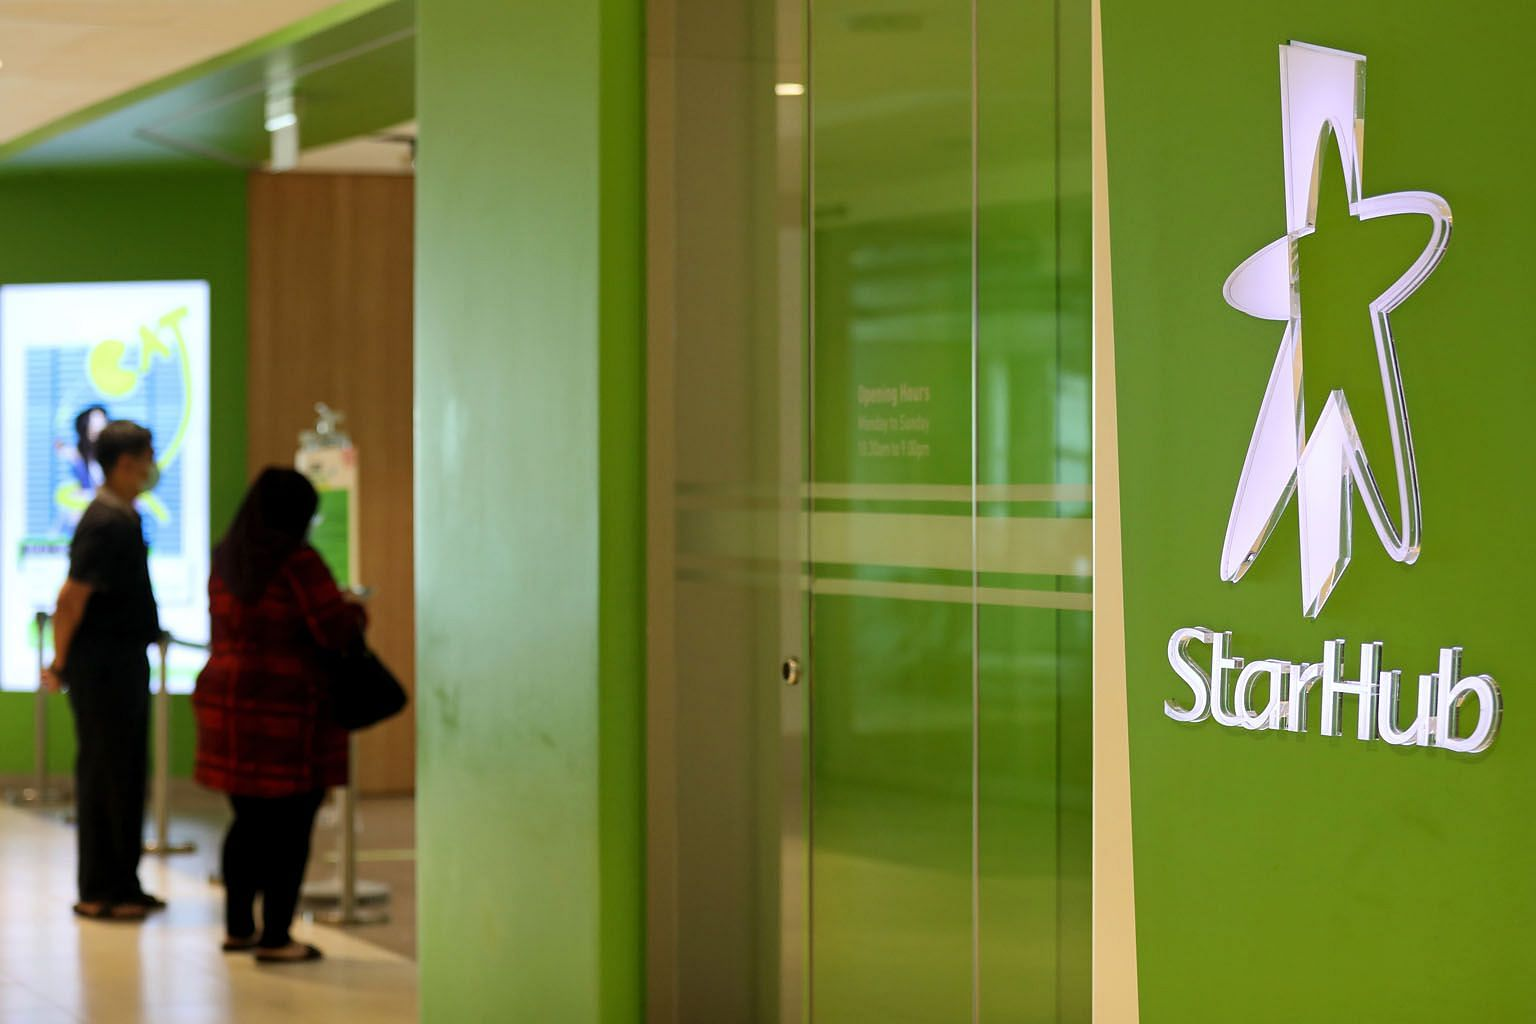 StarHub is working to grow its cyber security arm's top and bottom lines, after Ensign InfoSecurity turned in its first quarterly profit in the first quarter of this year, the telco's CEO Peter Kaliaropoulos said yesterday.